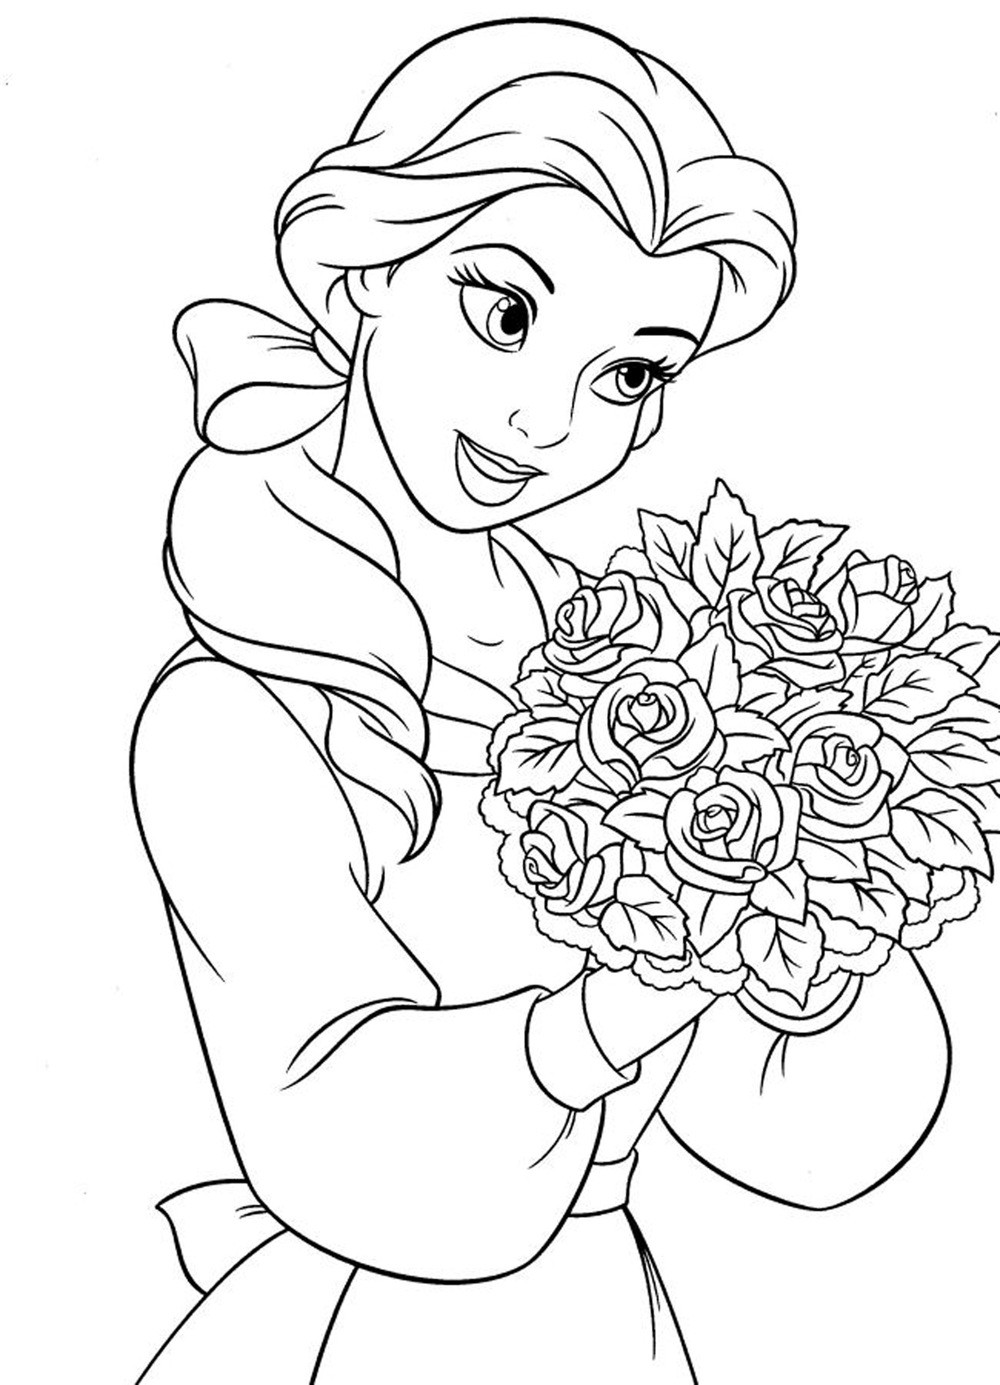 Best ideas about Coloring Pages For Girls Disney Princess . Save or Pin Free Printable Disney Princess Coloring Pages For Kids Now.